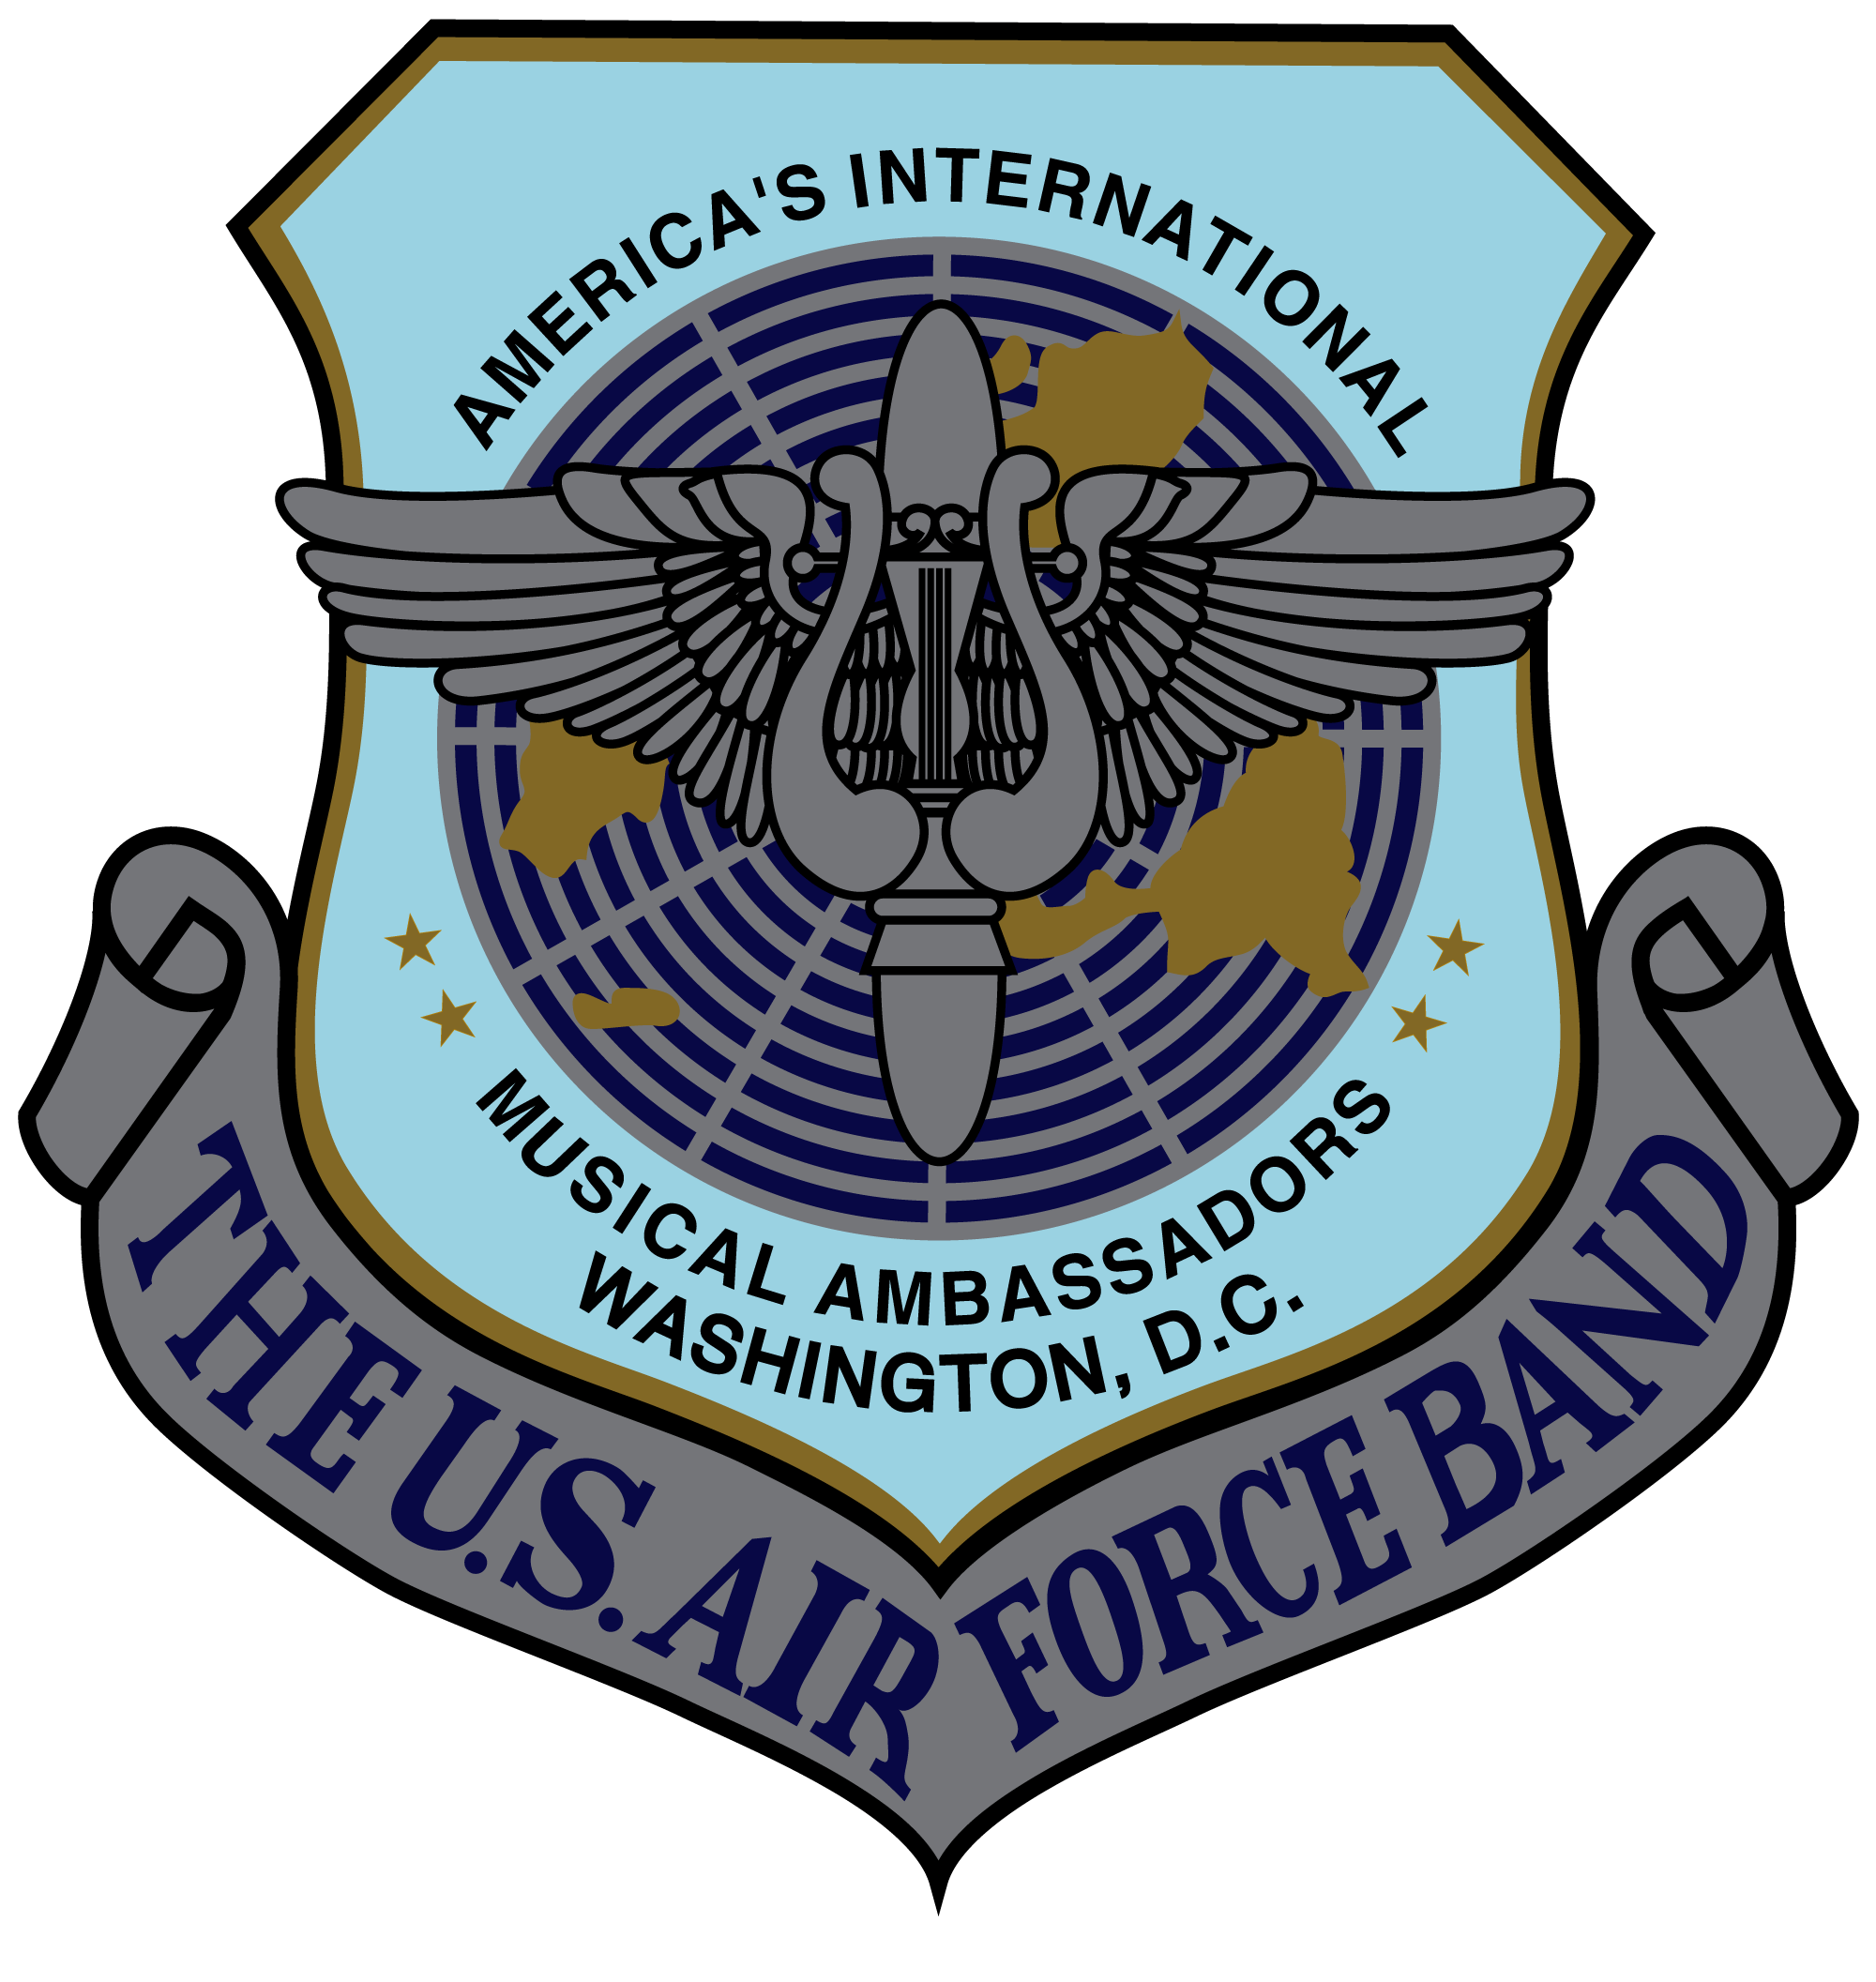 42 us air force logo clip art . Free cliparts that you can download to ...